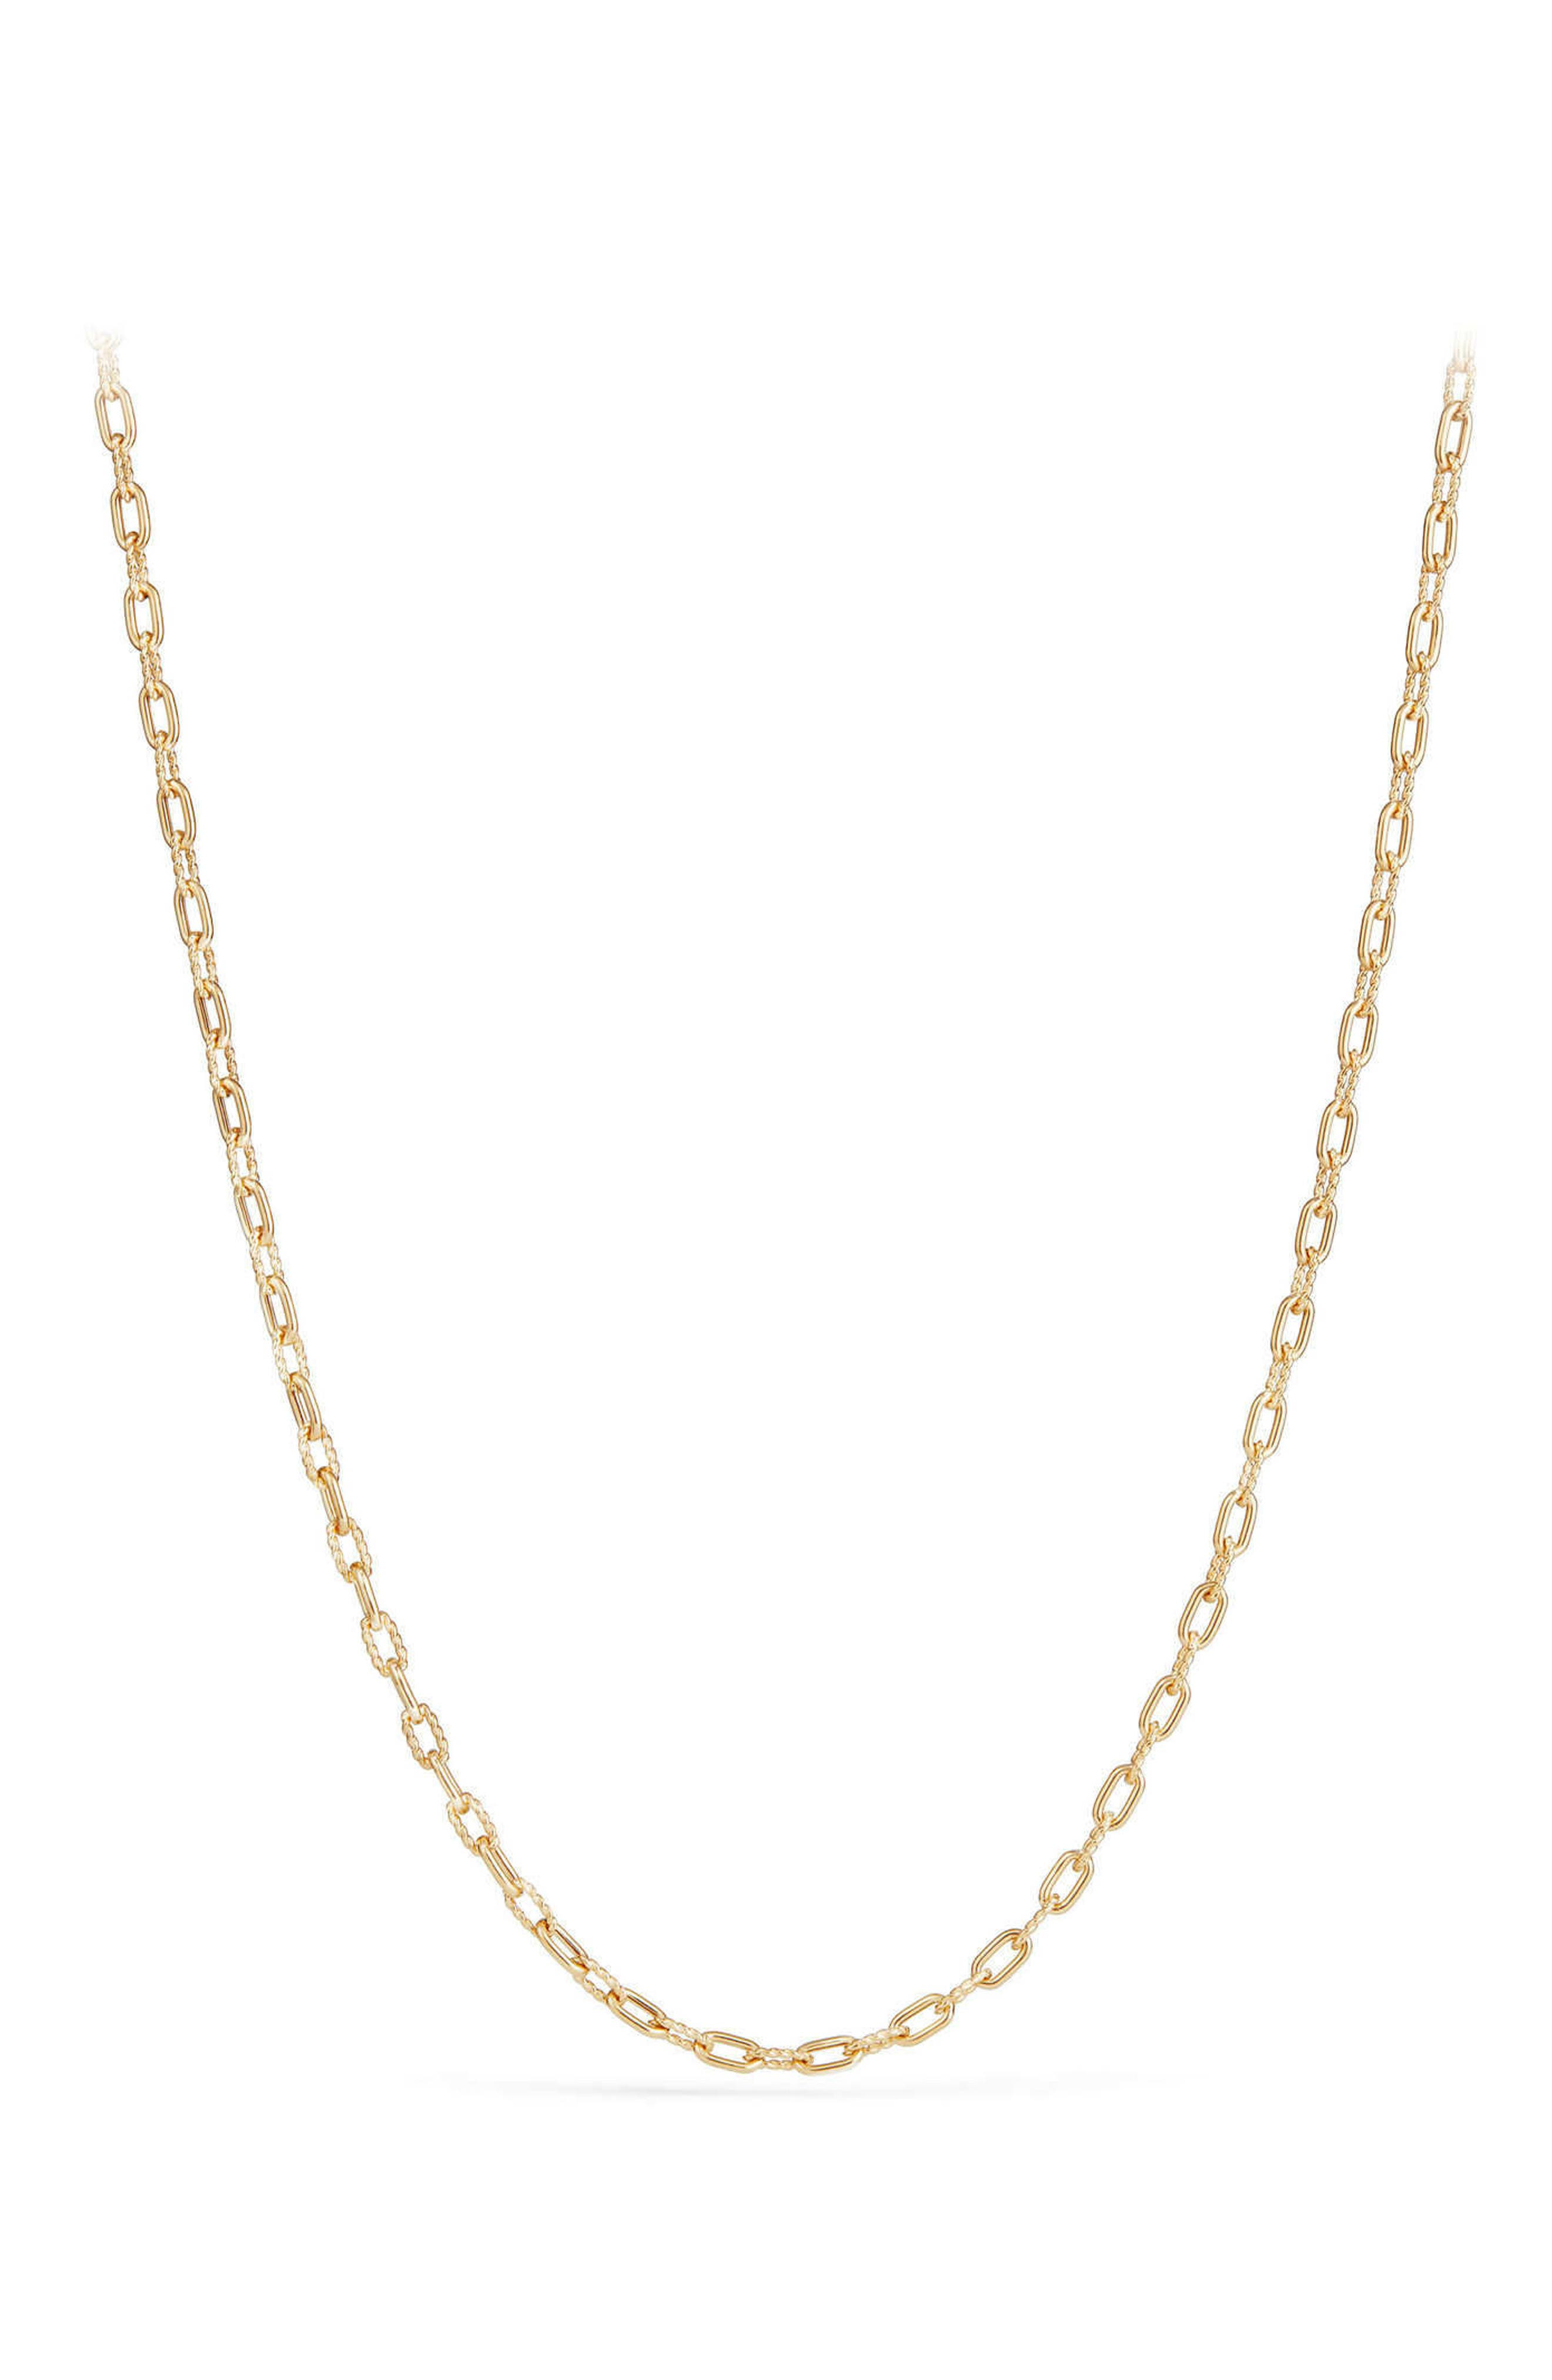 DY Madison Thin Chain Necklace in 18K Gold,                         Main,                         color, Gold